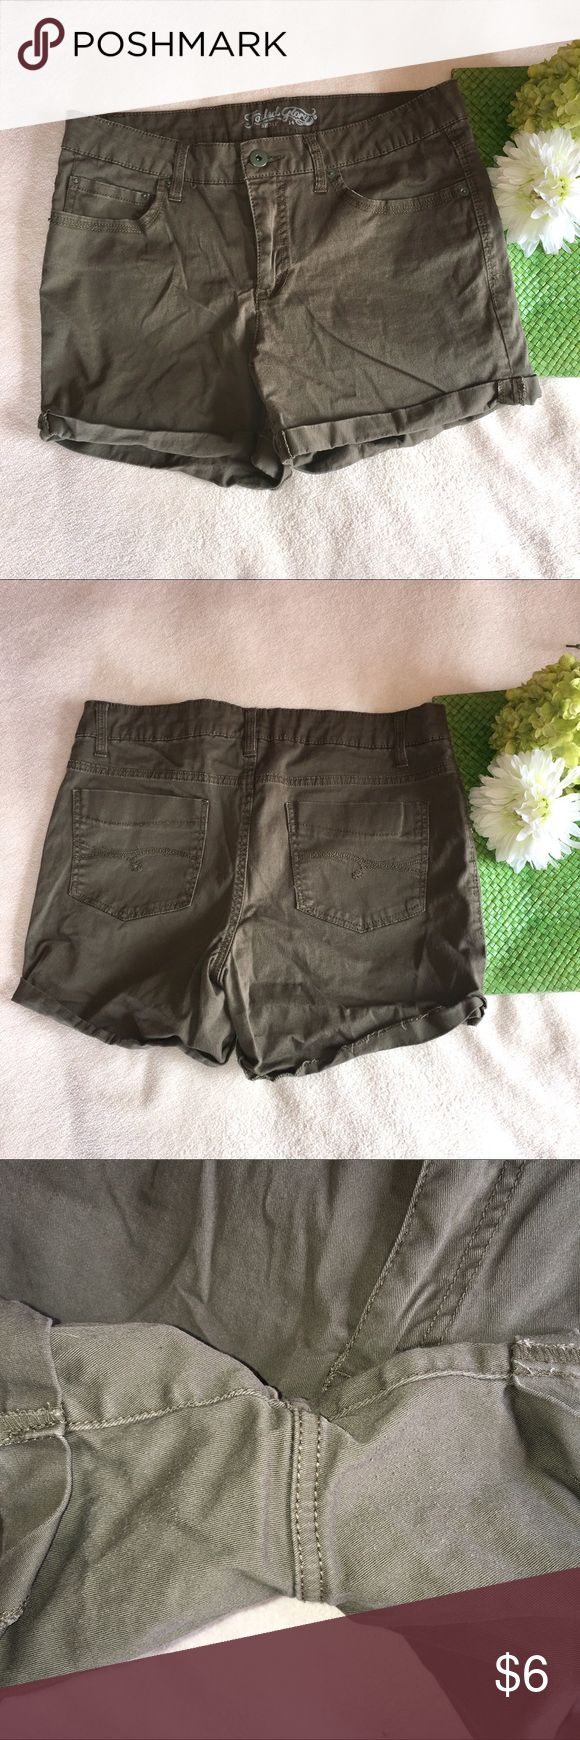 Army green shorts Some pilling between legs. Waist: 17"